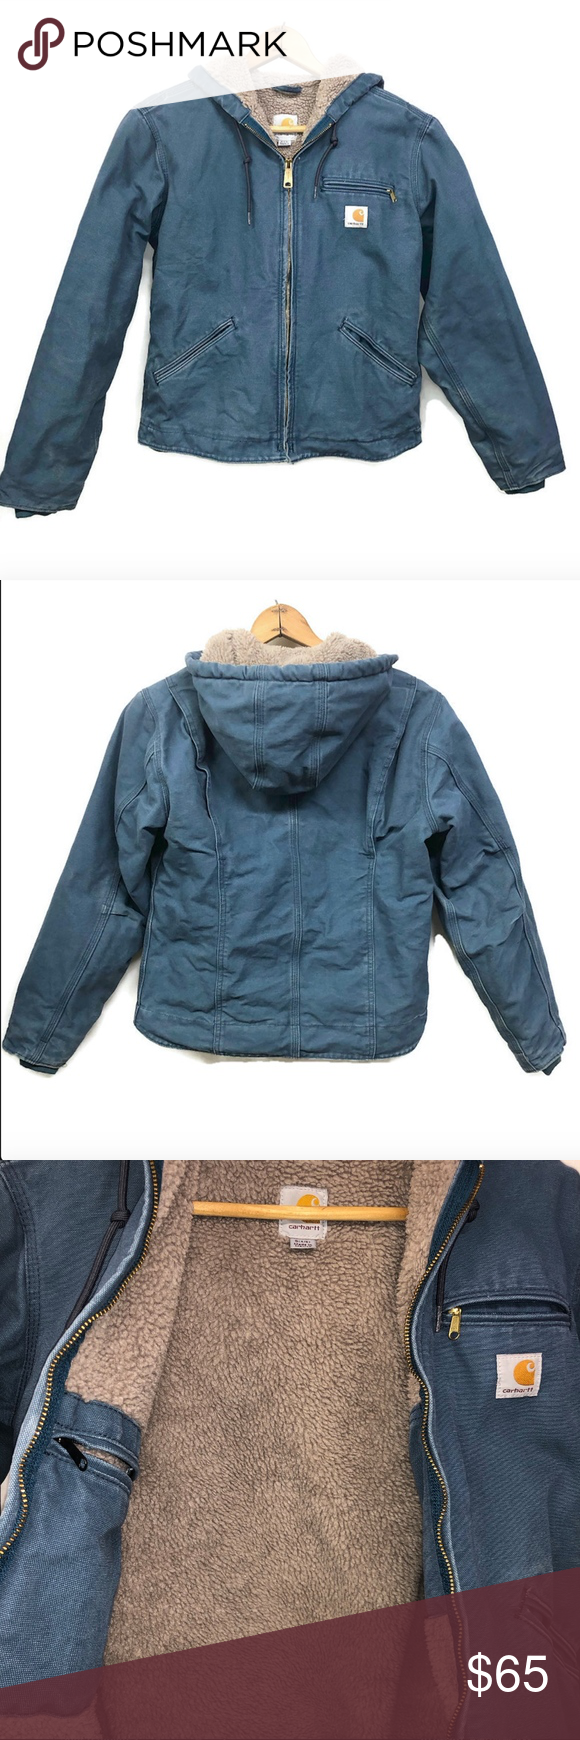 CARHARTT Women's Sz Small Blue Duck Canvas Sherpa CARHARTT Women's Sz Small Blue Duck Canvas Sherpa Fleece Lined Hooded Jacket  Very good condition.  Size tag small, measures 21 inches across the chest and 25 inches overall length. Features:  Hood, 2 inside pockets, 3 outside pockets, ribbed cuffs.  Please see all photos.  We are a smoke free, pet friendly home.  Have a great day! Carhartt Jackets & Coats #carharttwomen